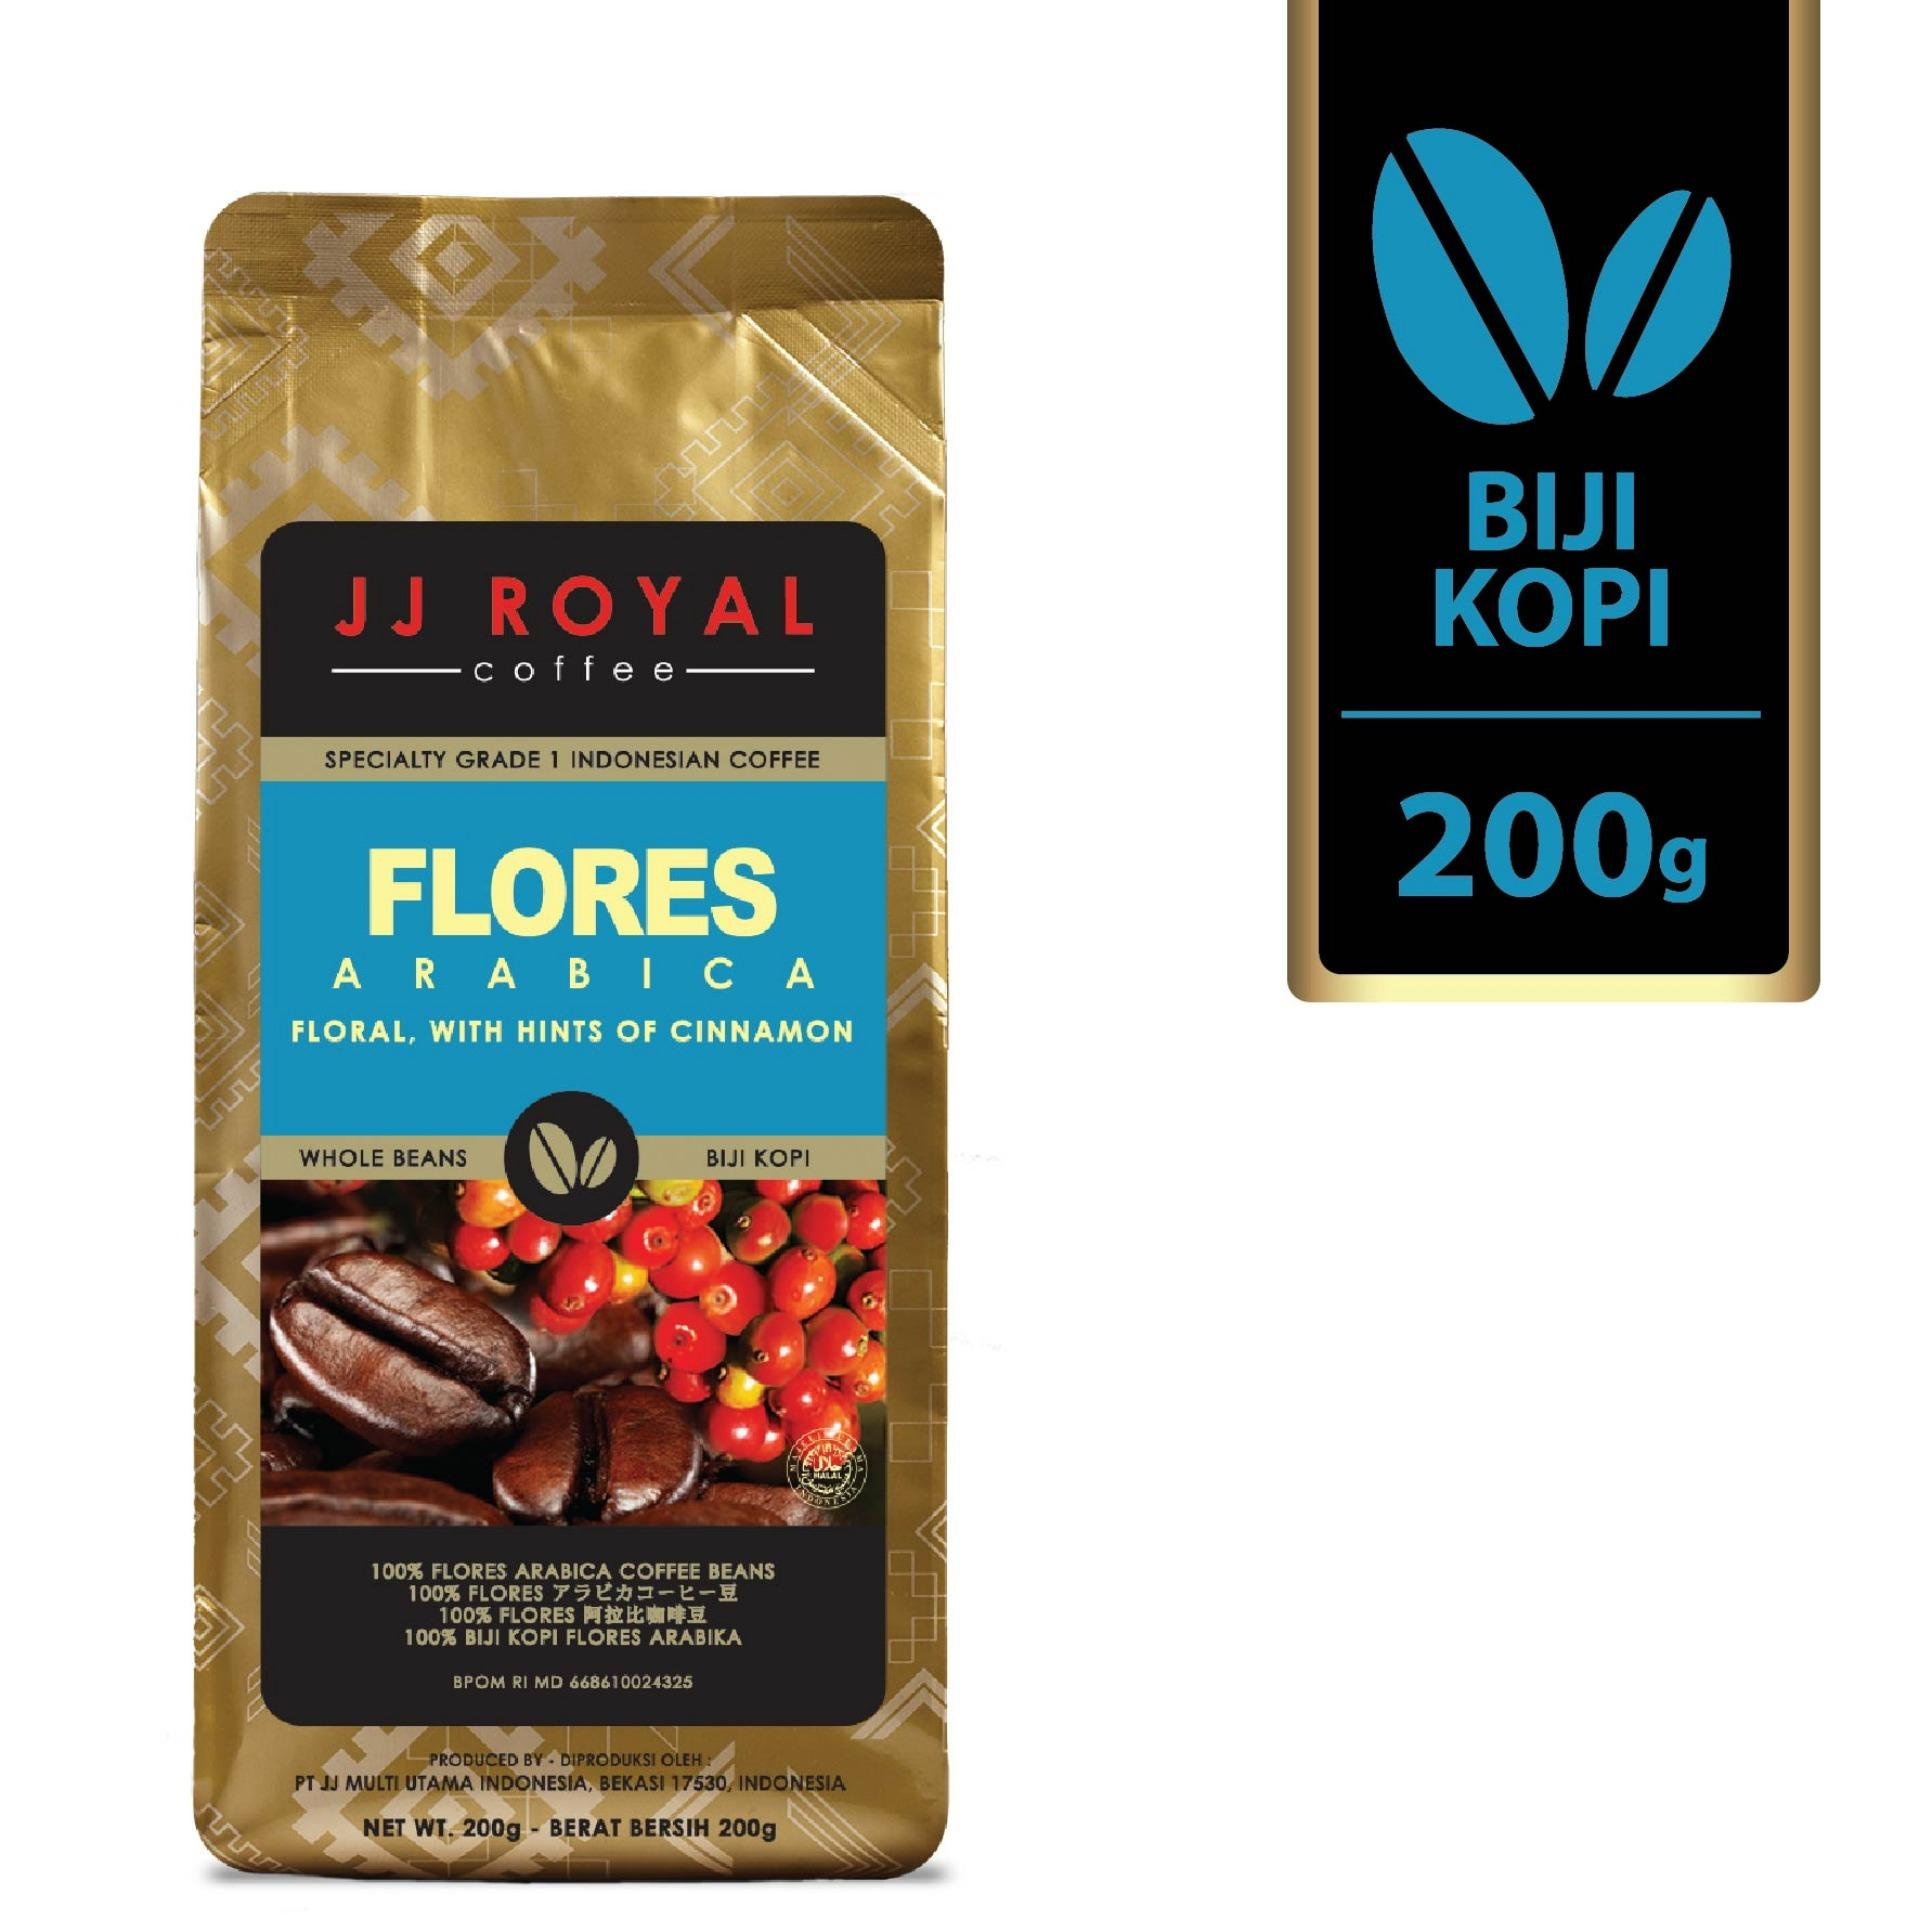 Review Jj Royal Coffee Flores Arabica Beans Bag 200 Gr Jj Royal Coffee Di Jawa Barat